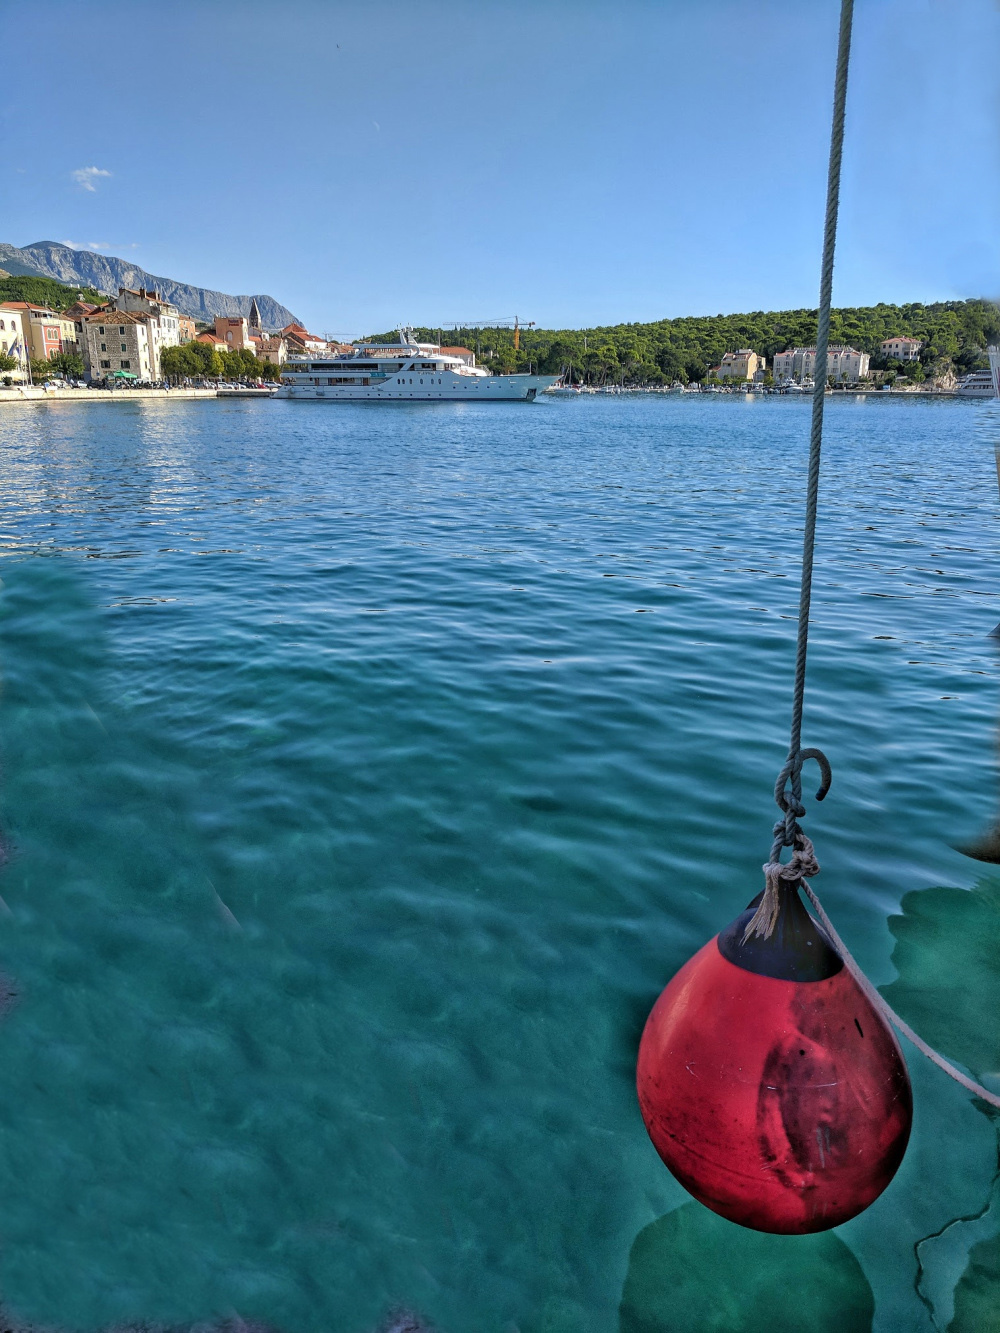 Road trip Croatia. Makarska is a popular beach destination.